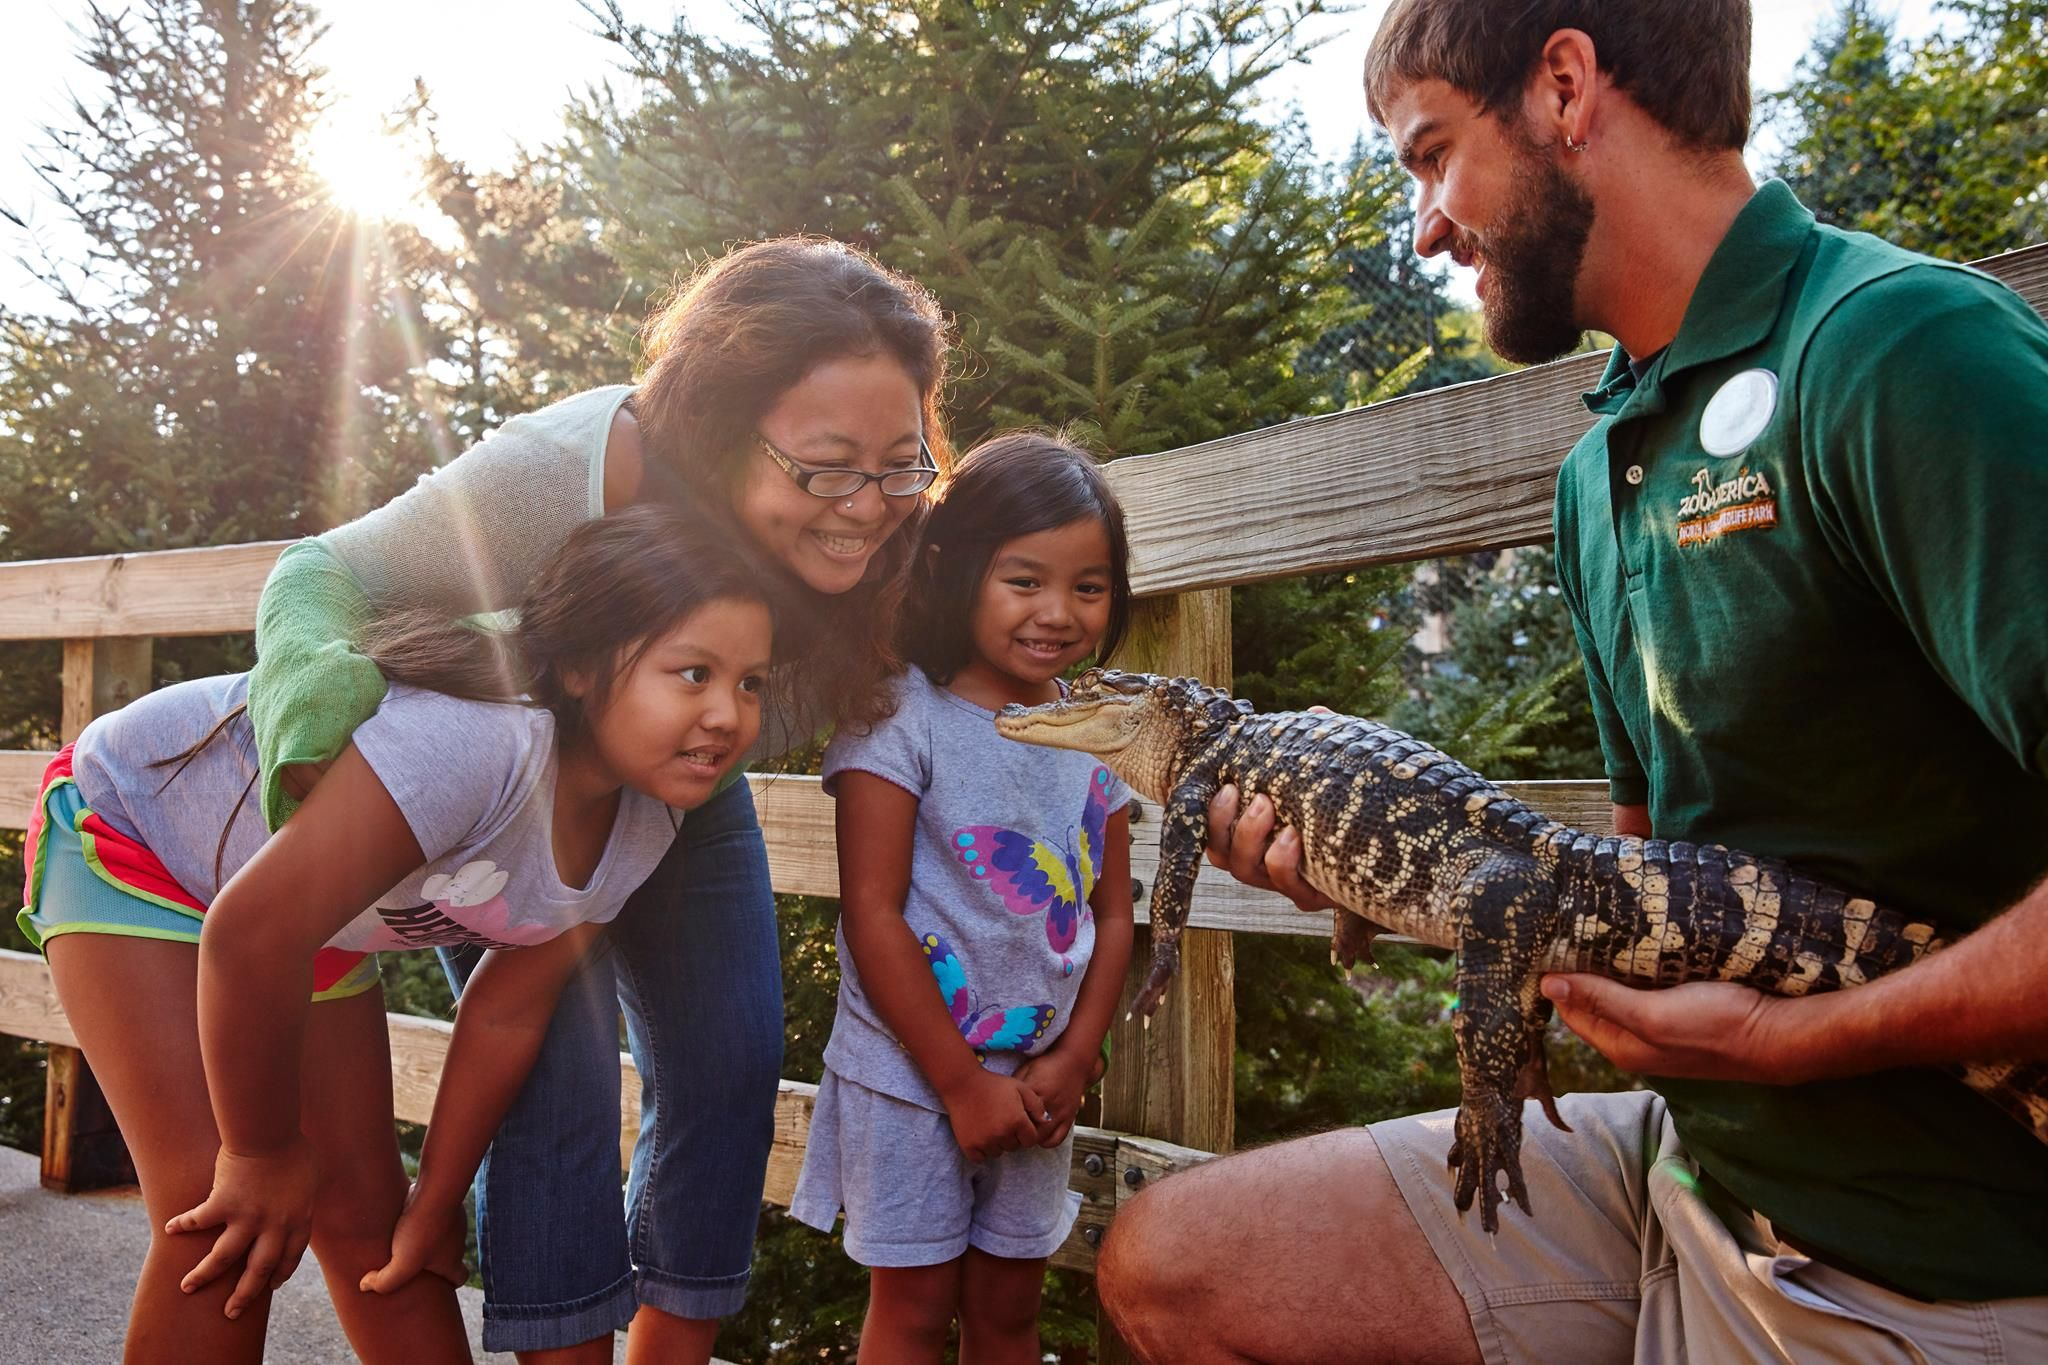 ZooAmerica is open in March and offers fun programs for